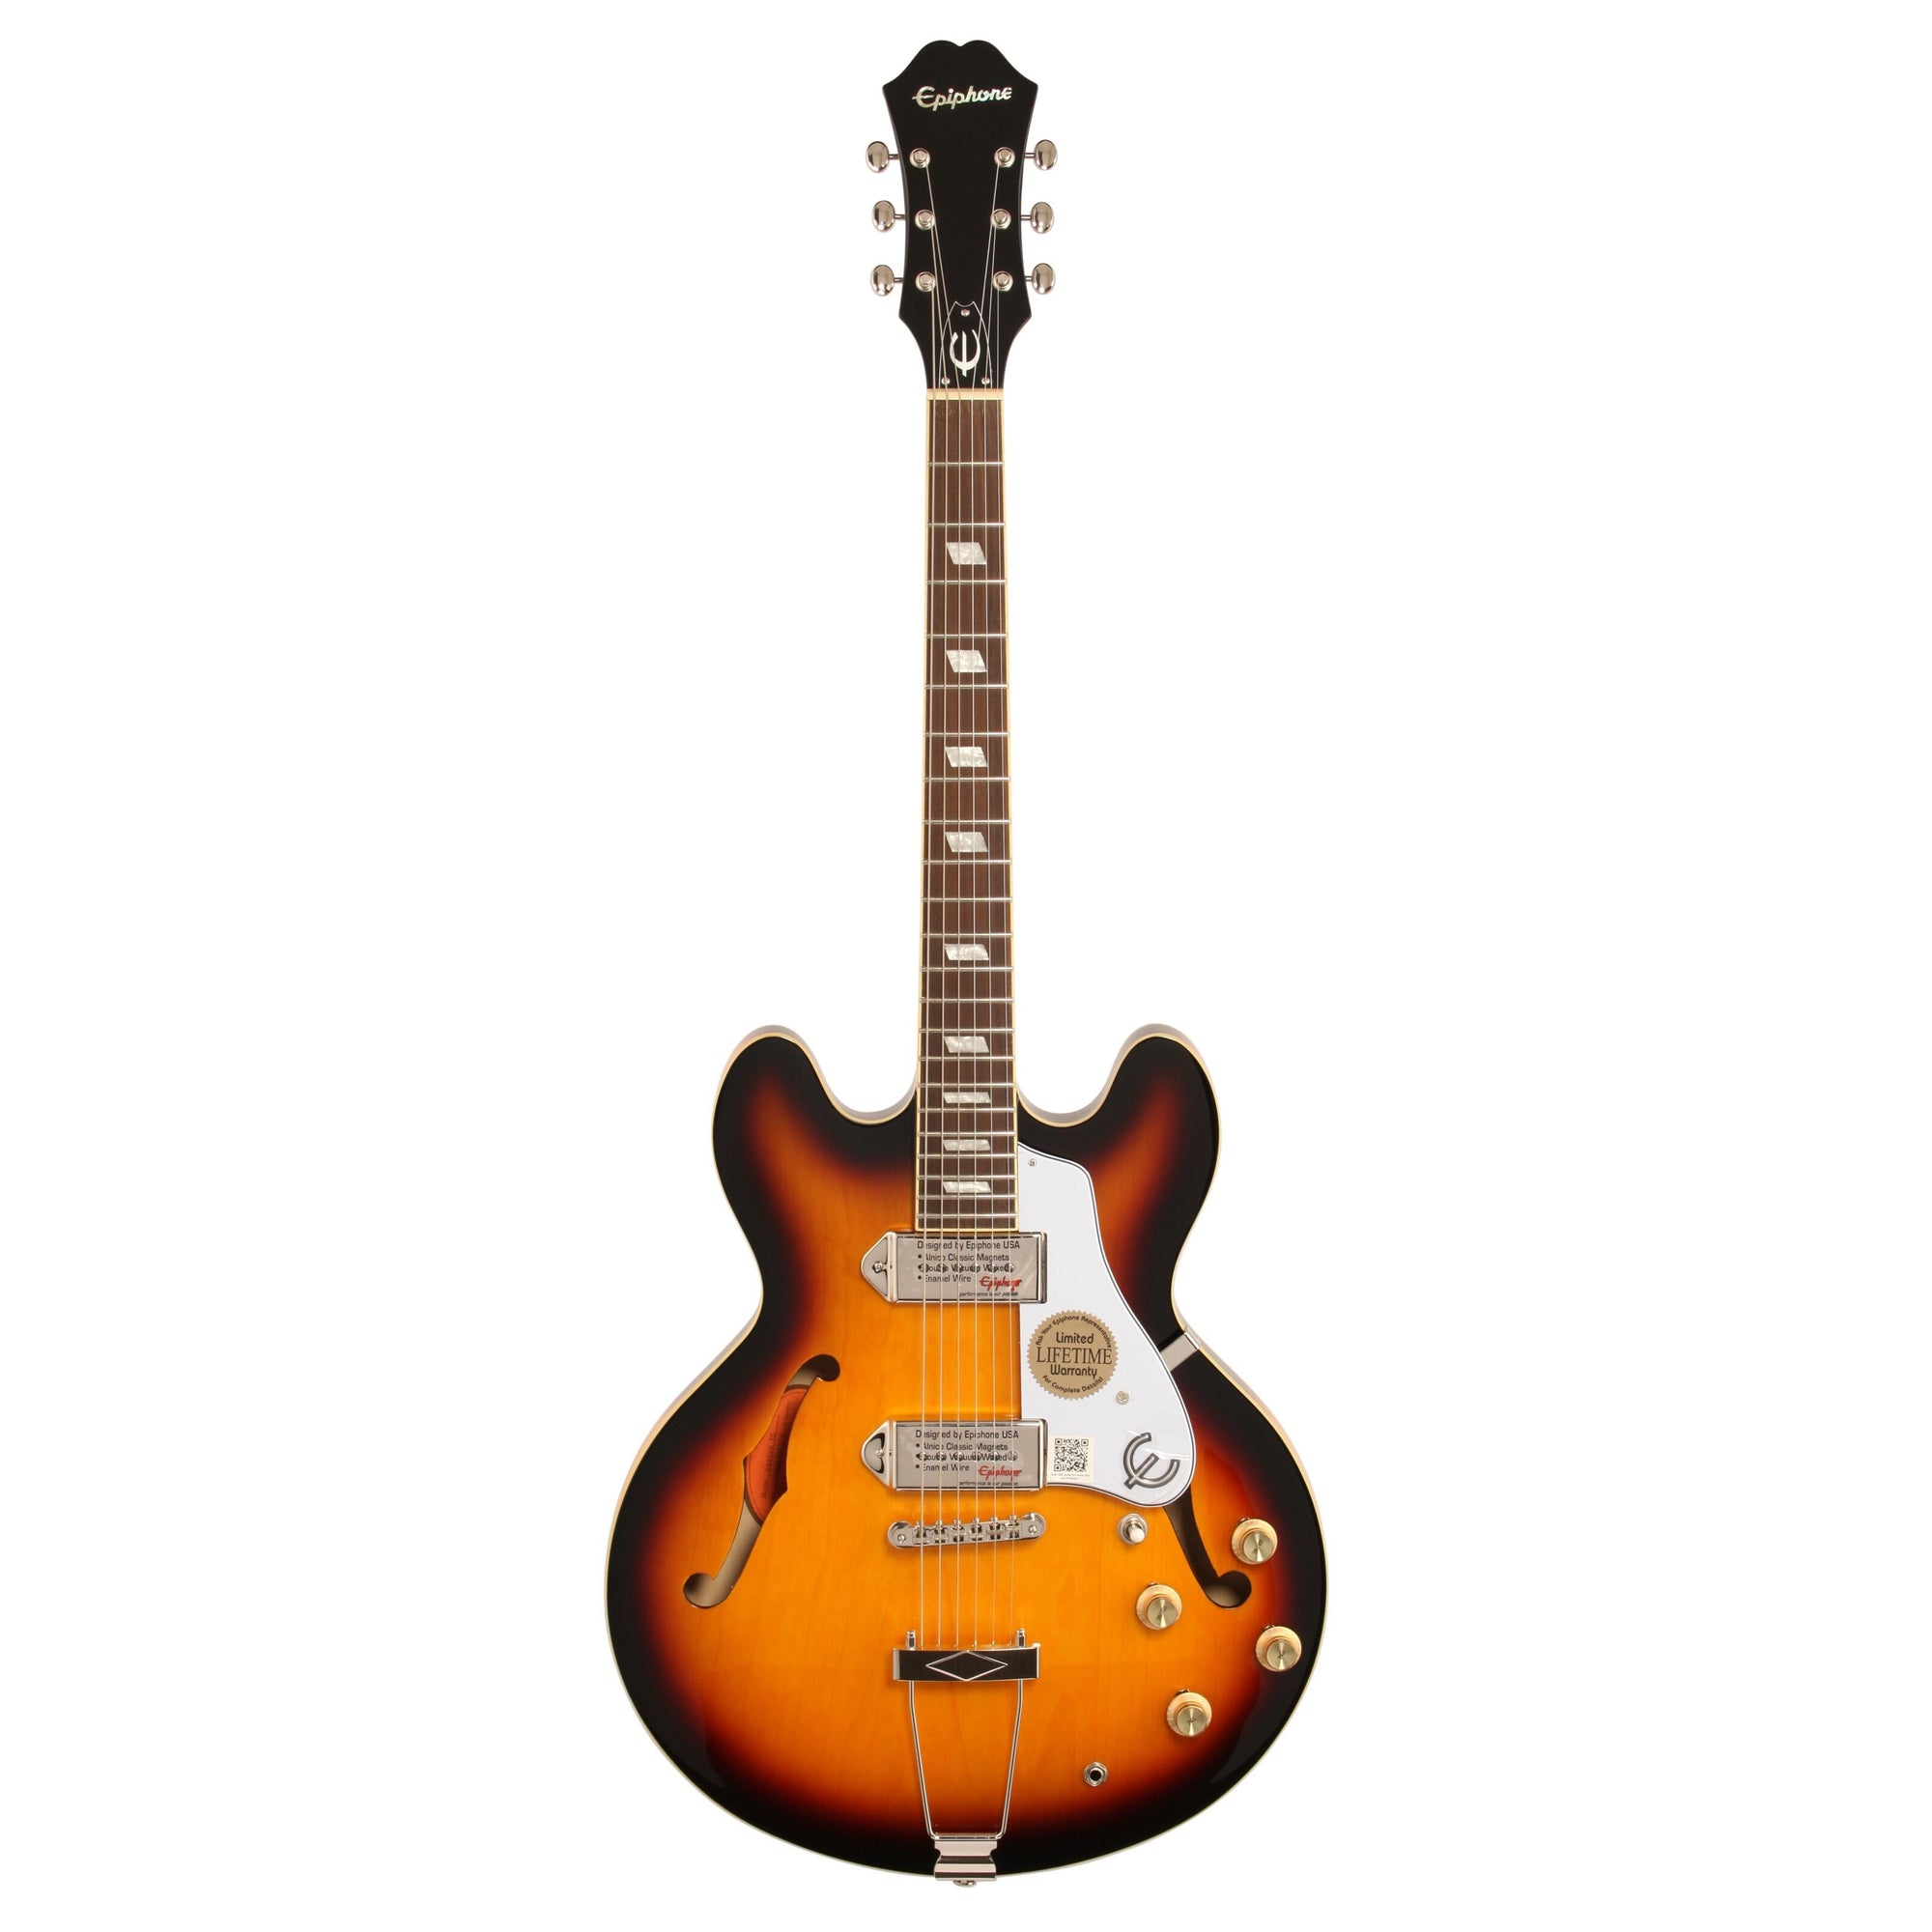 Epiphone Casino Archtop Electric Guitar, Vintage Sunburst